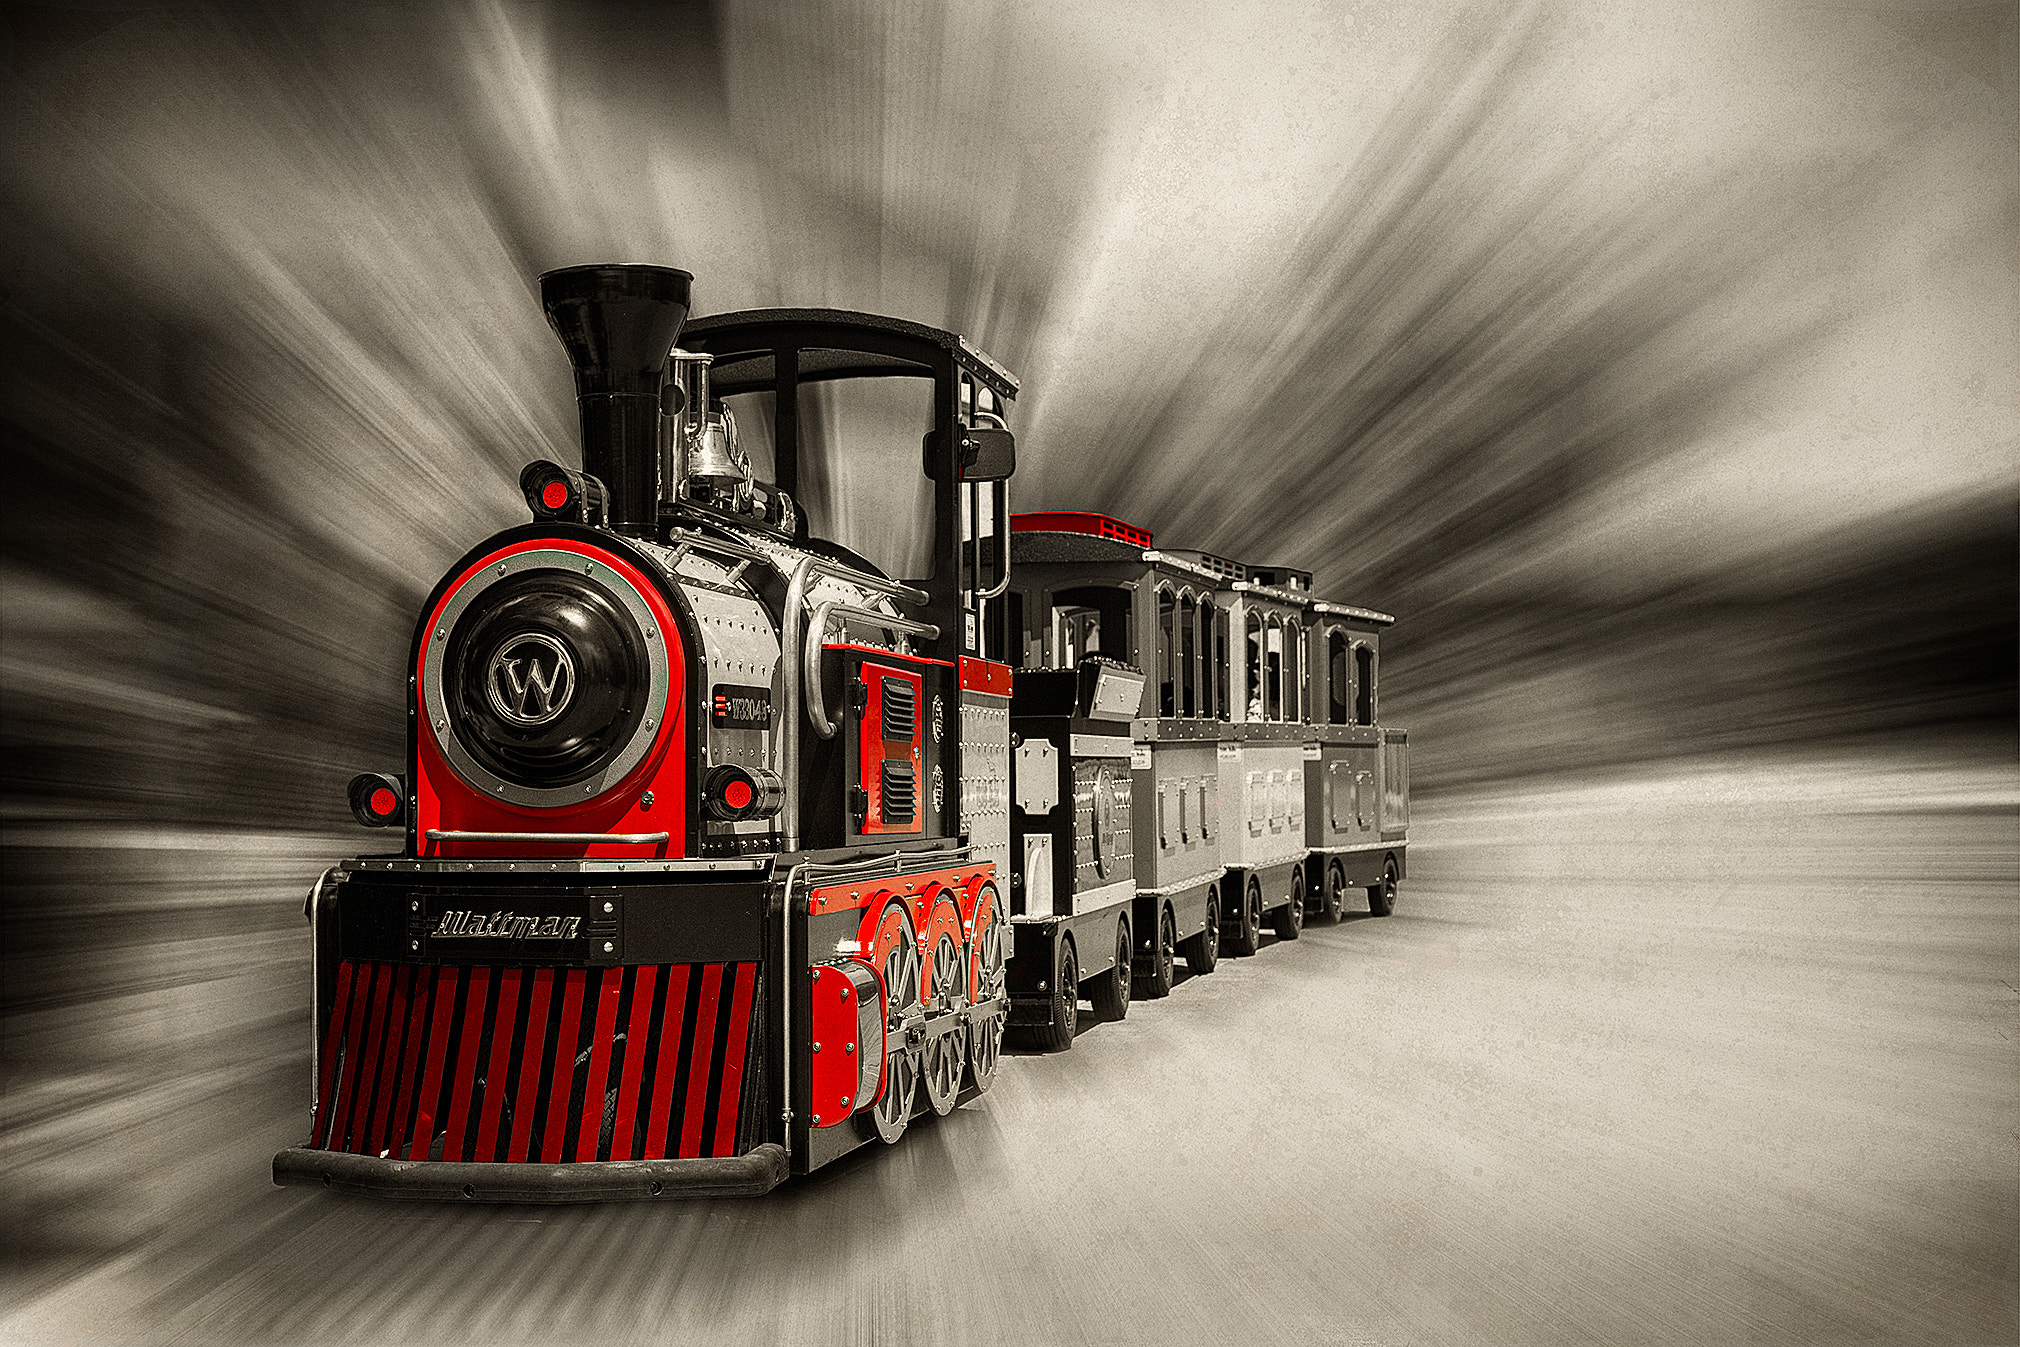 Photograph Train by Tetyana Kovyrina on 500px